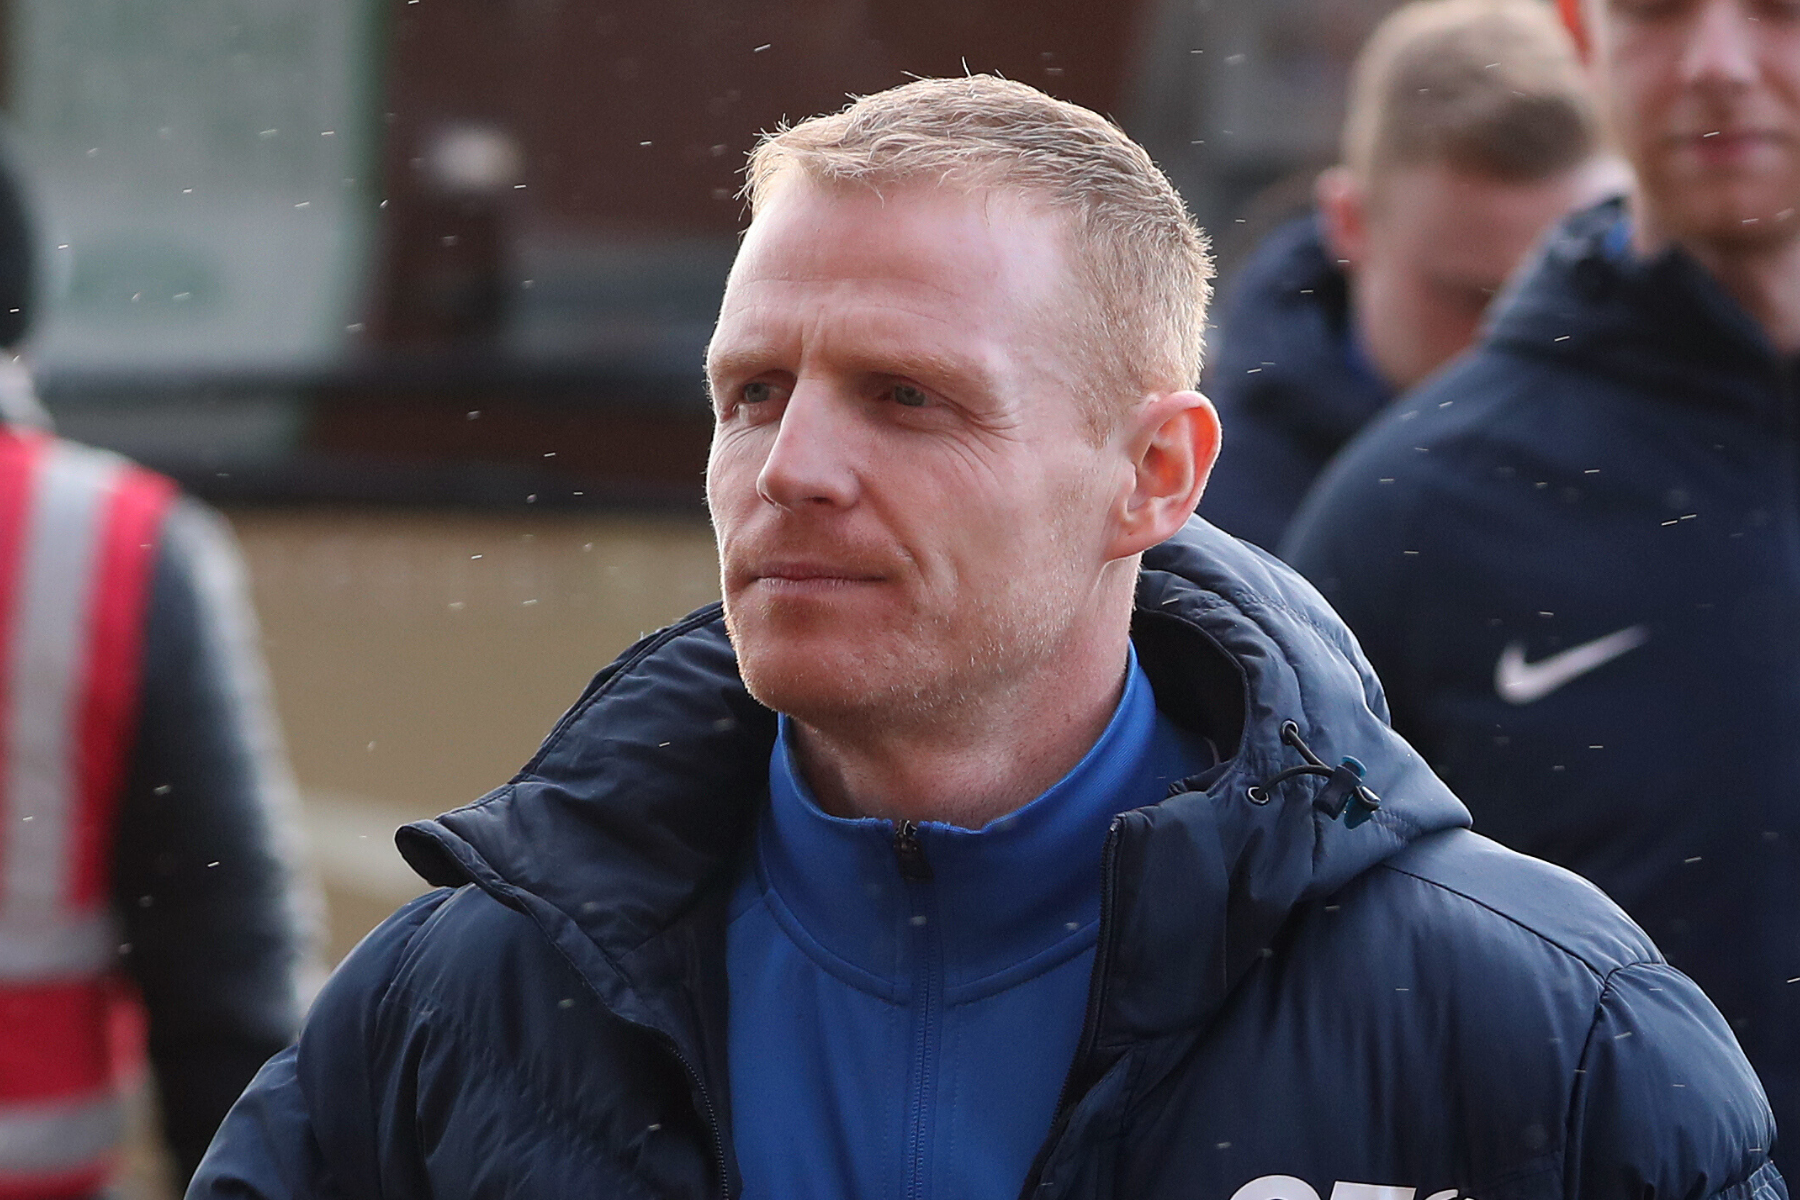 Kilmarnock star Chris Burke reveals secret sleeping, eating and football routine that's been key to longevity